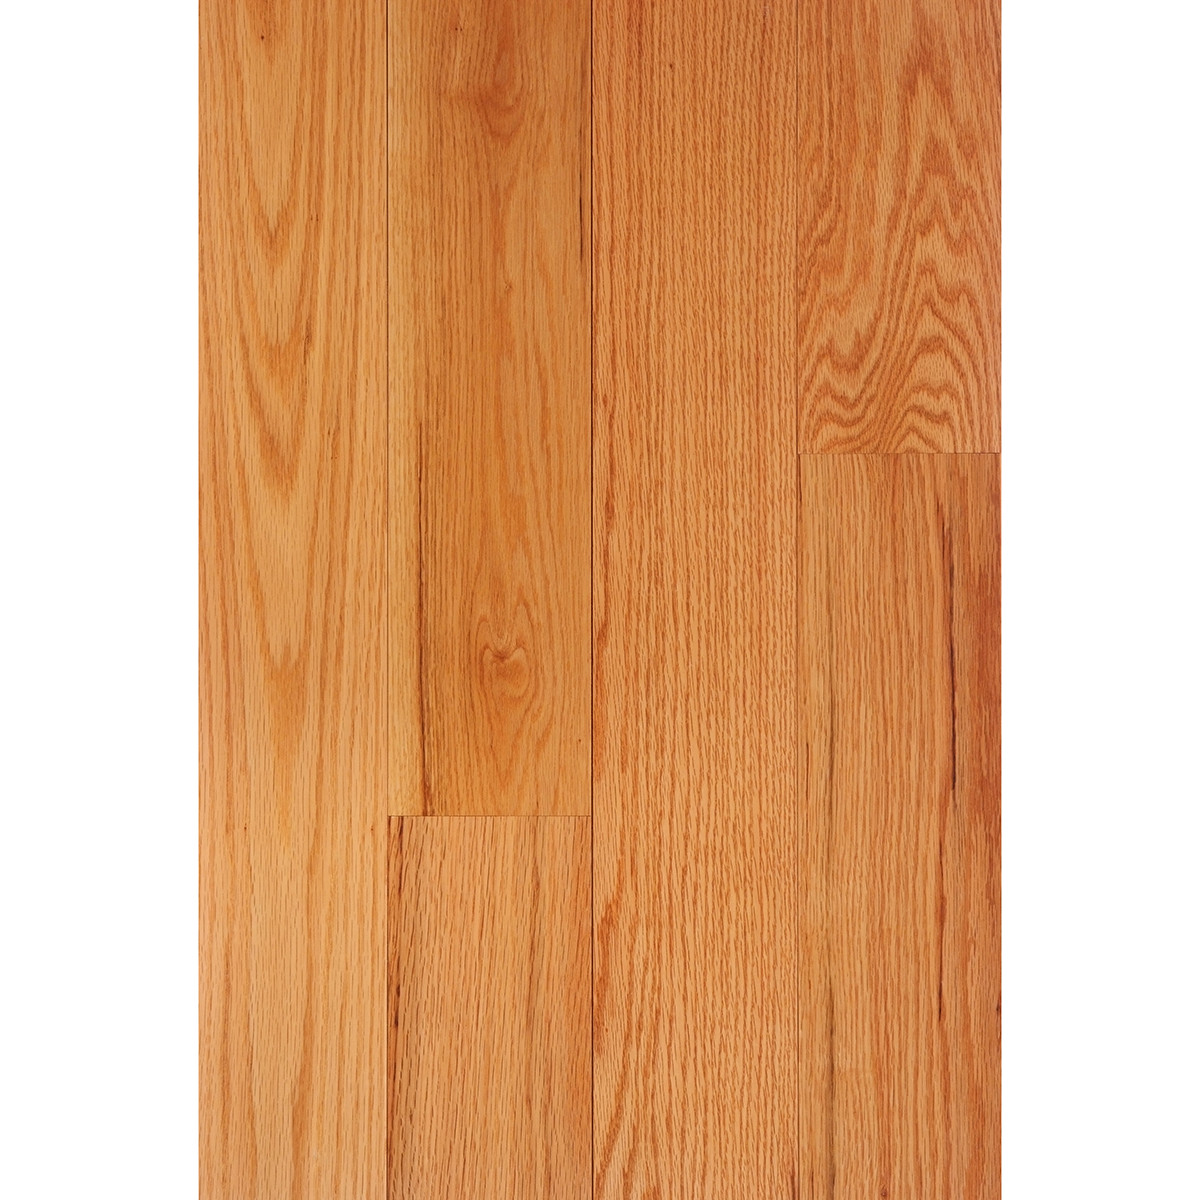 3 4 prefinished hardwood flooring of red oak 3 4 x 5 select grade flooring for prefinished clear semi gloss 3 4